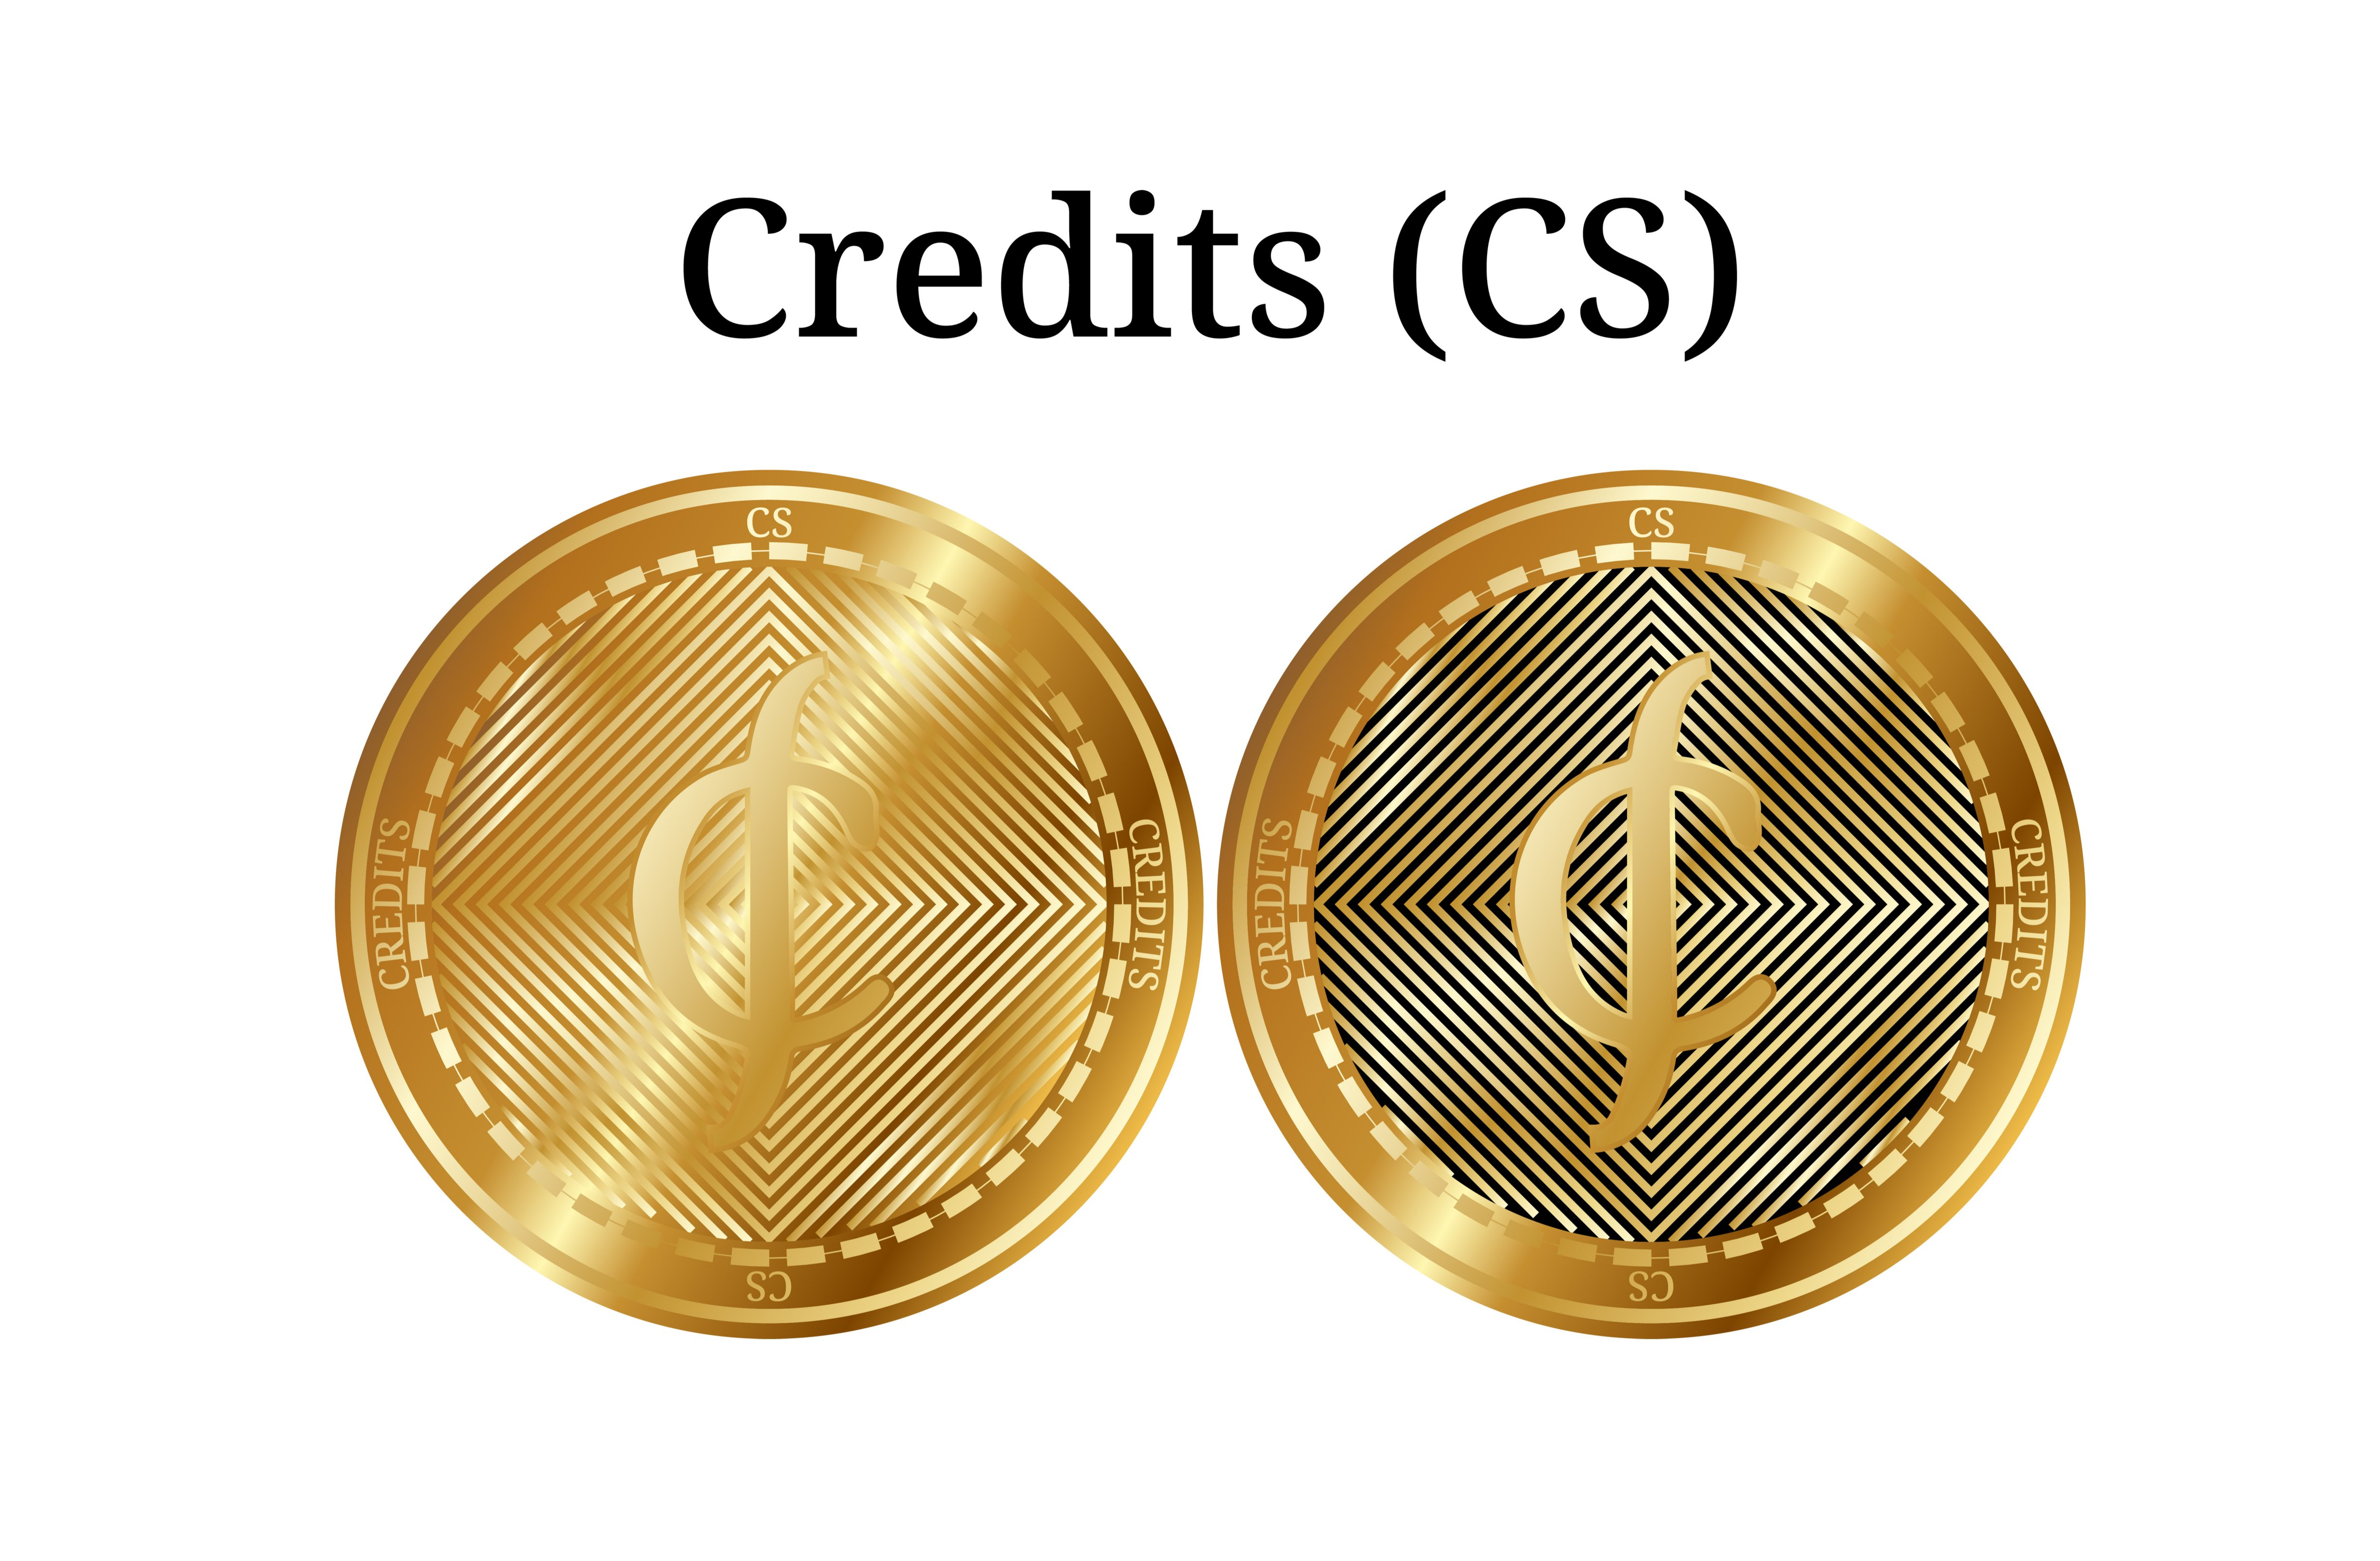 gold Credits coins